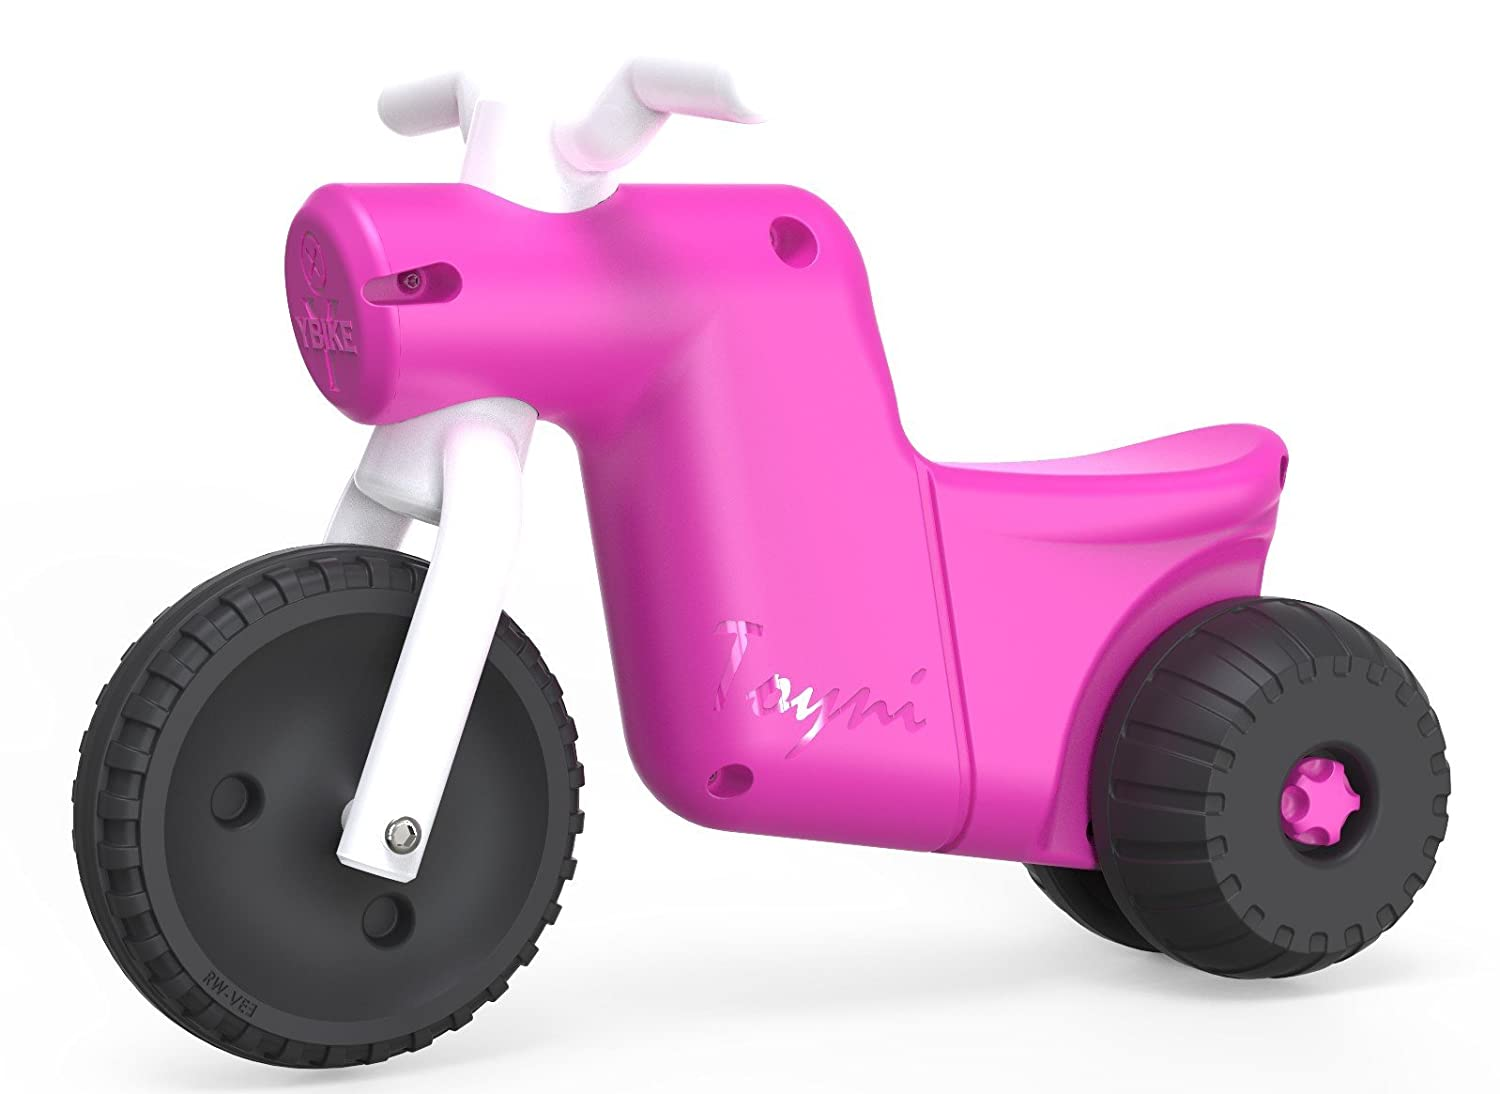 (Pink) - Bike, Tricycle YBIKE Toyni Pink Tricycle Balance Bike, Pink B07733791M, 嘉島町:08689710 --- gamenavi.club